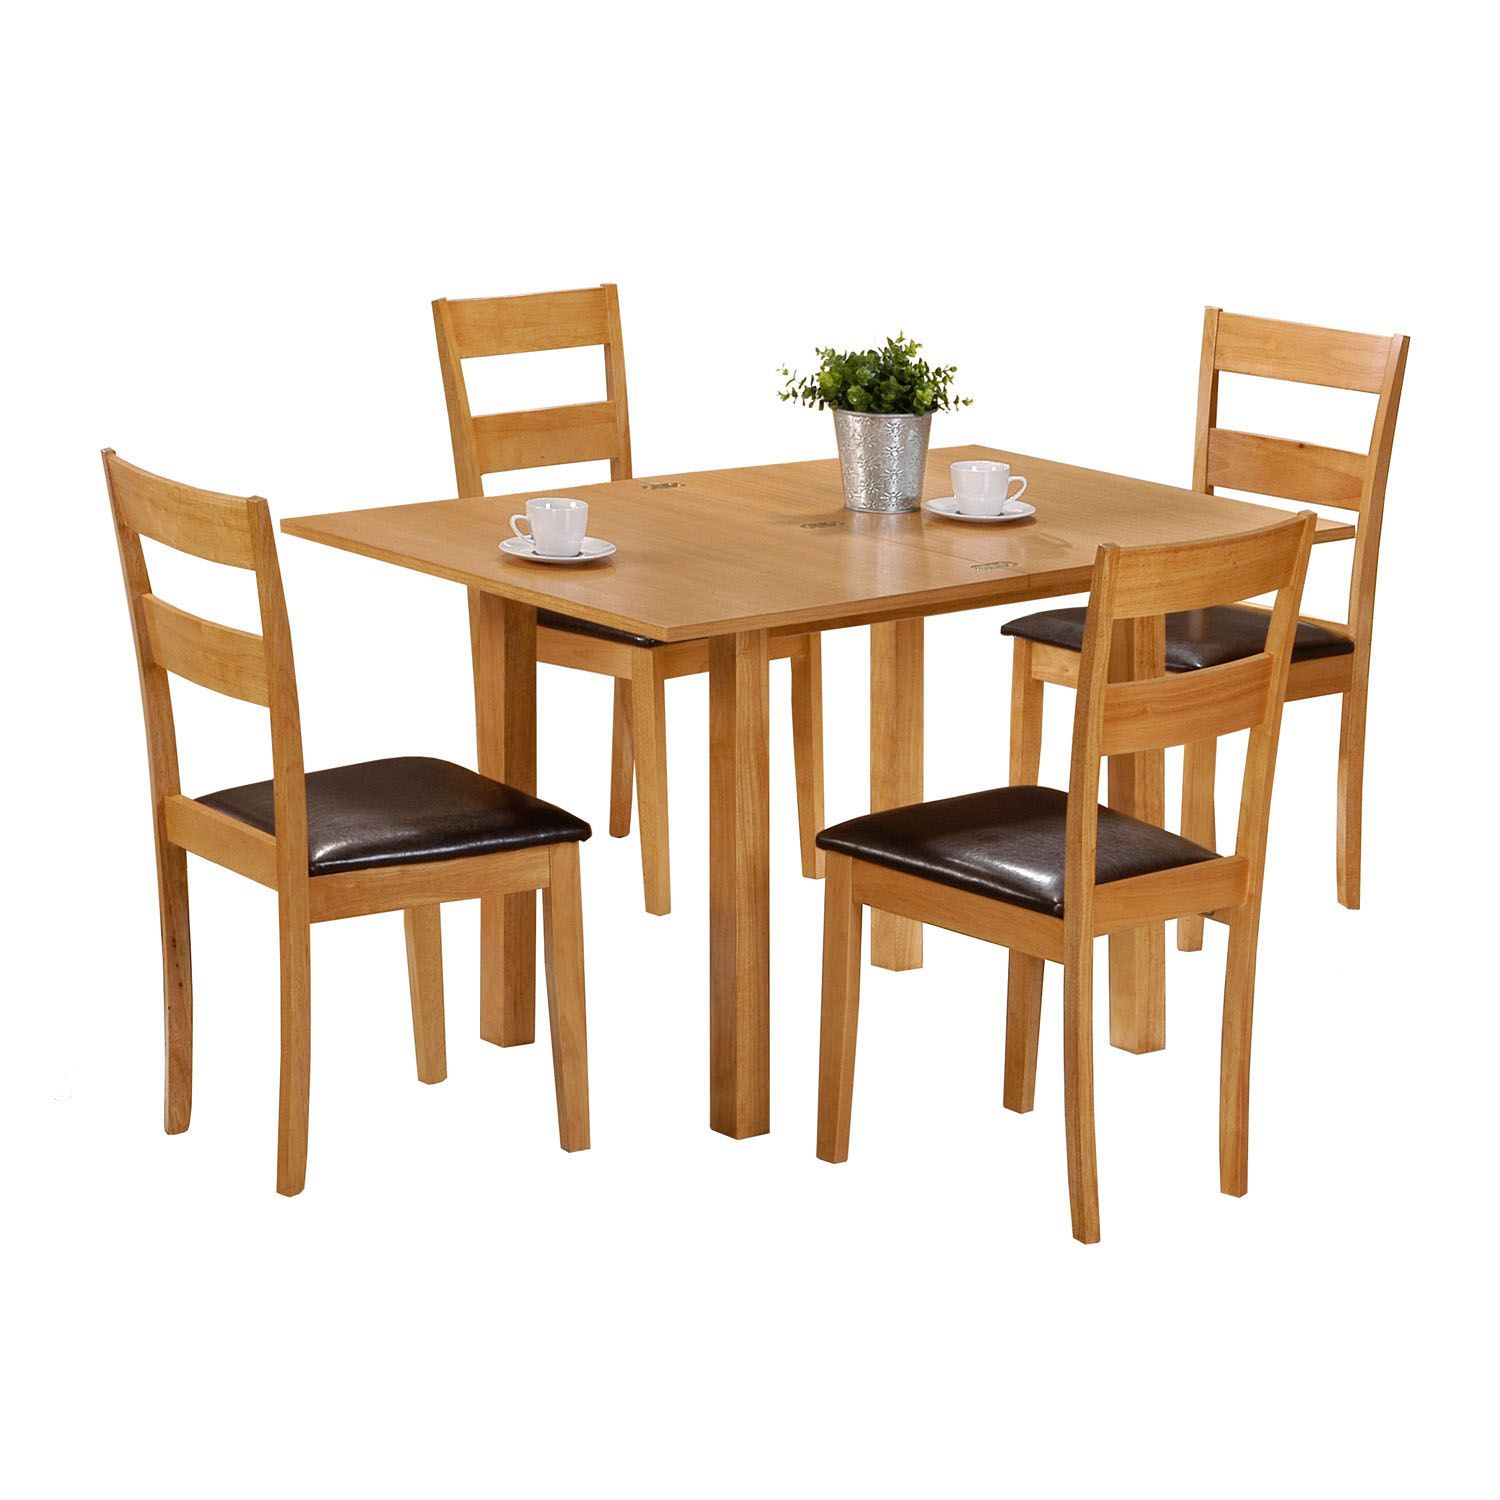 dining table 4 chairs - 4 Chair Dining Table